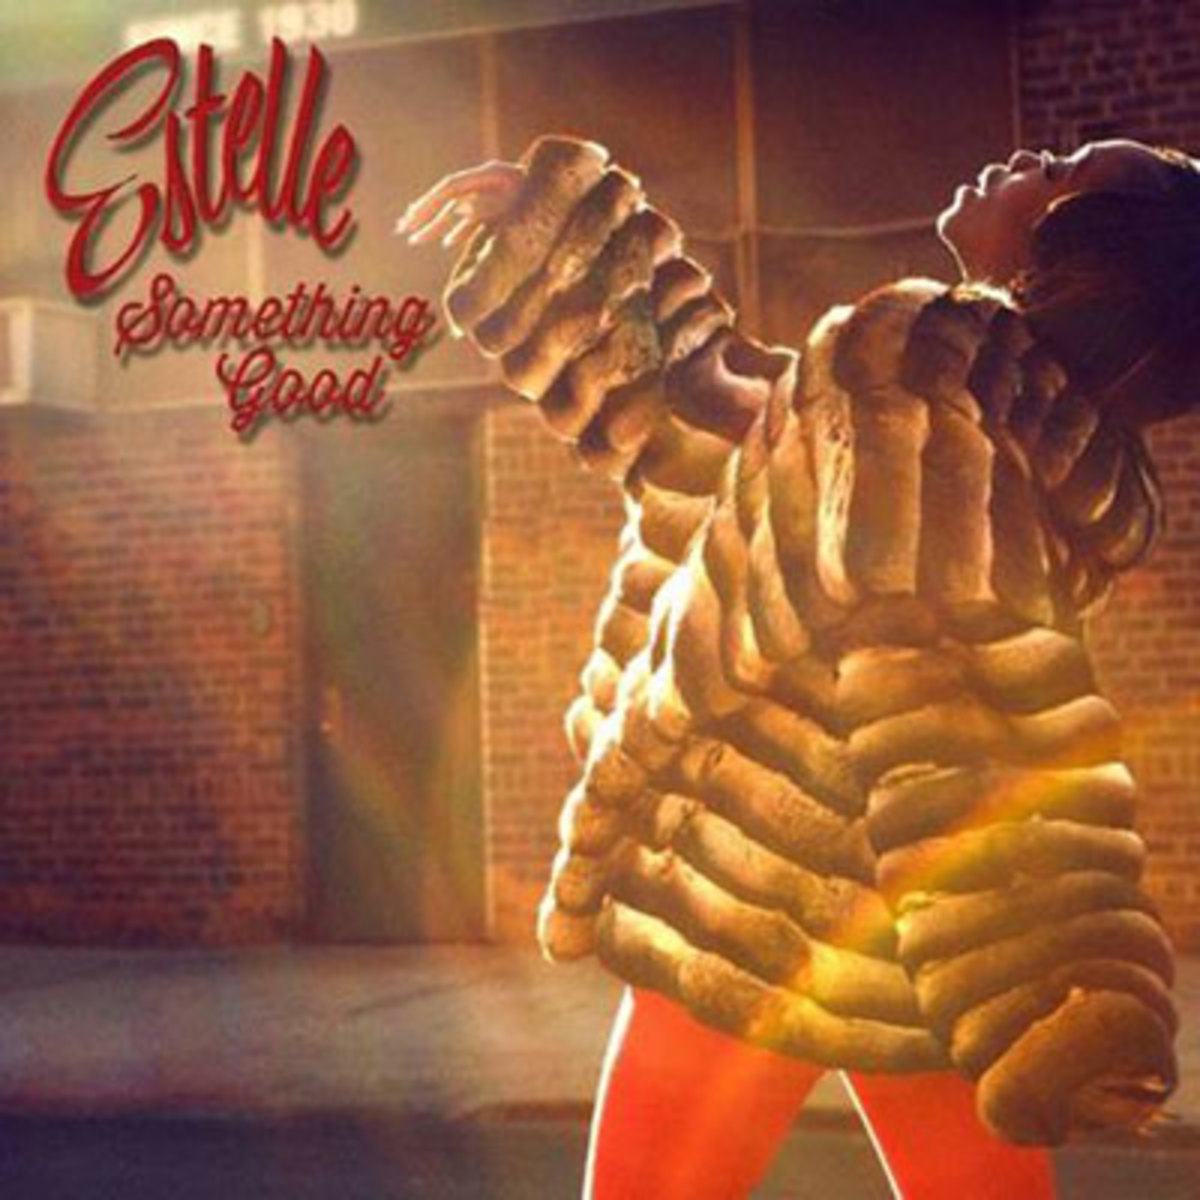 estelle-somethinggood.jpg